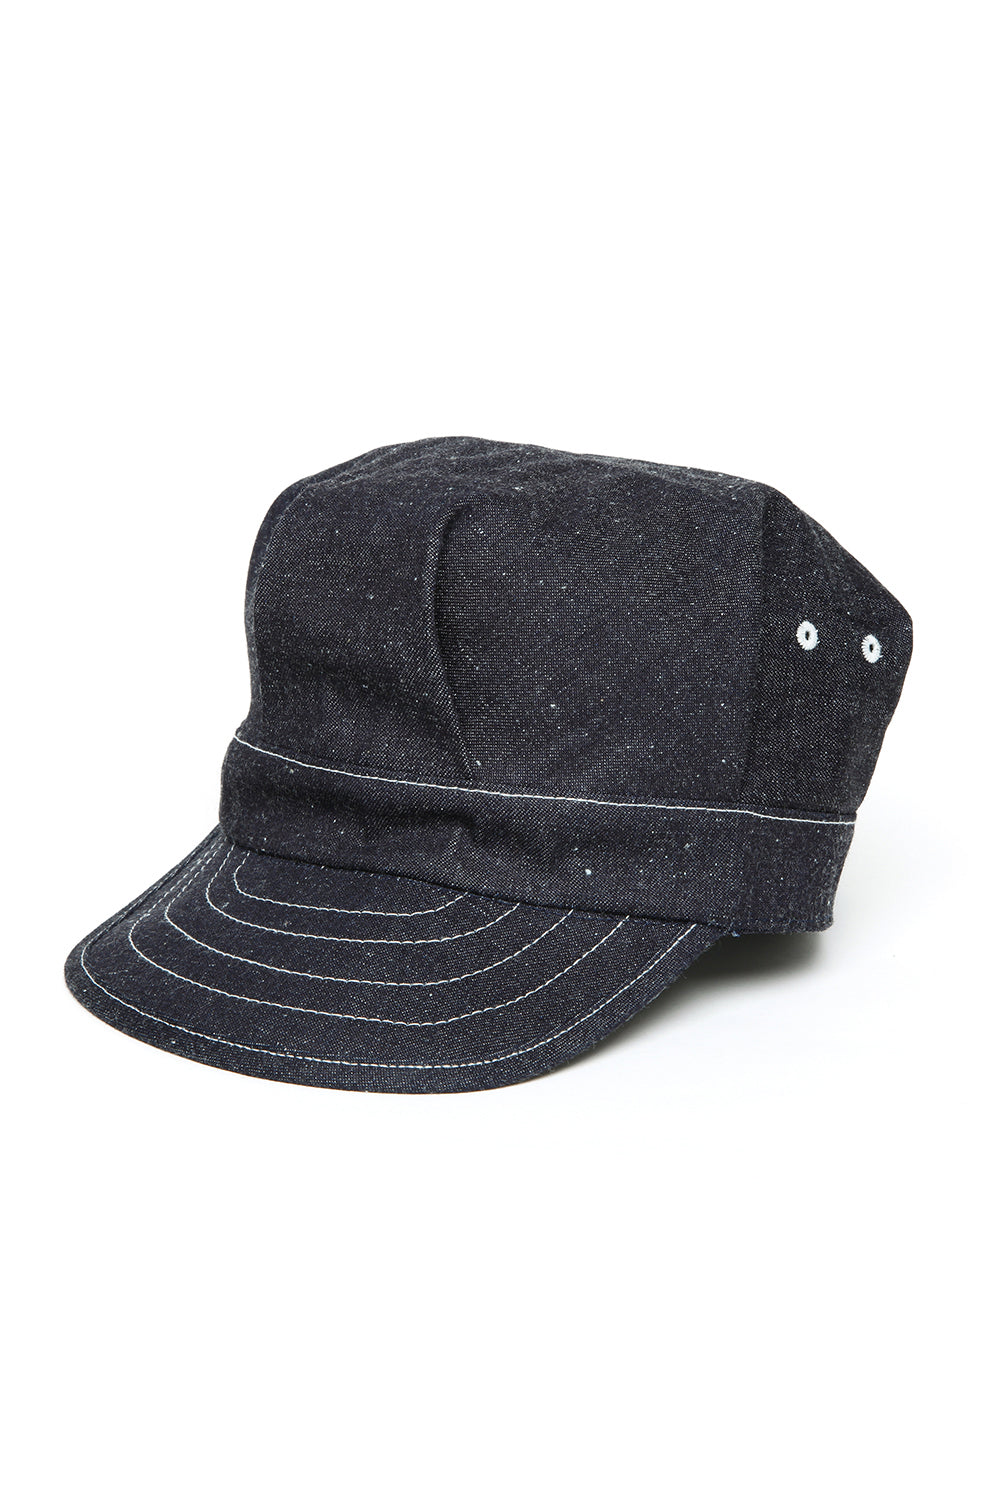 Lot.687 SL Work Cap -Indigo-